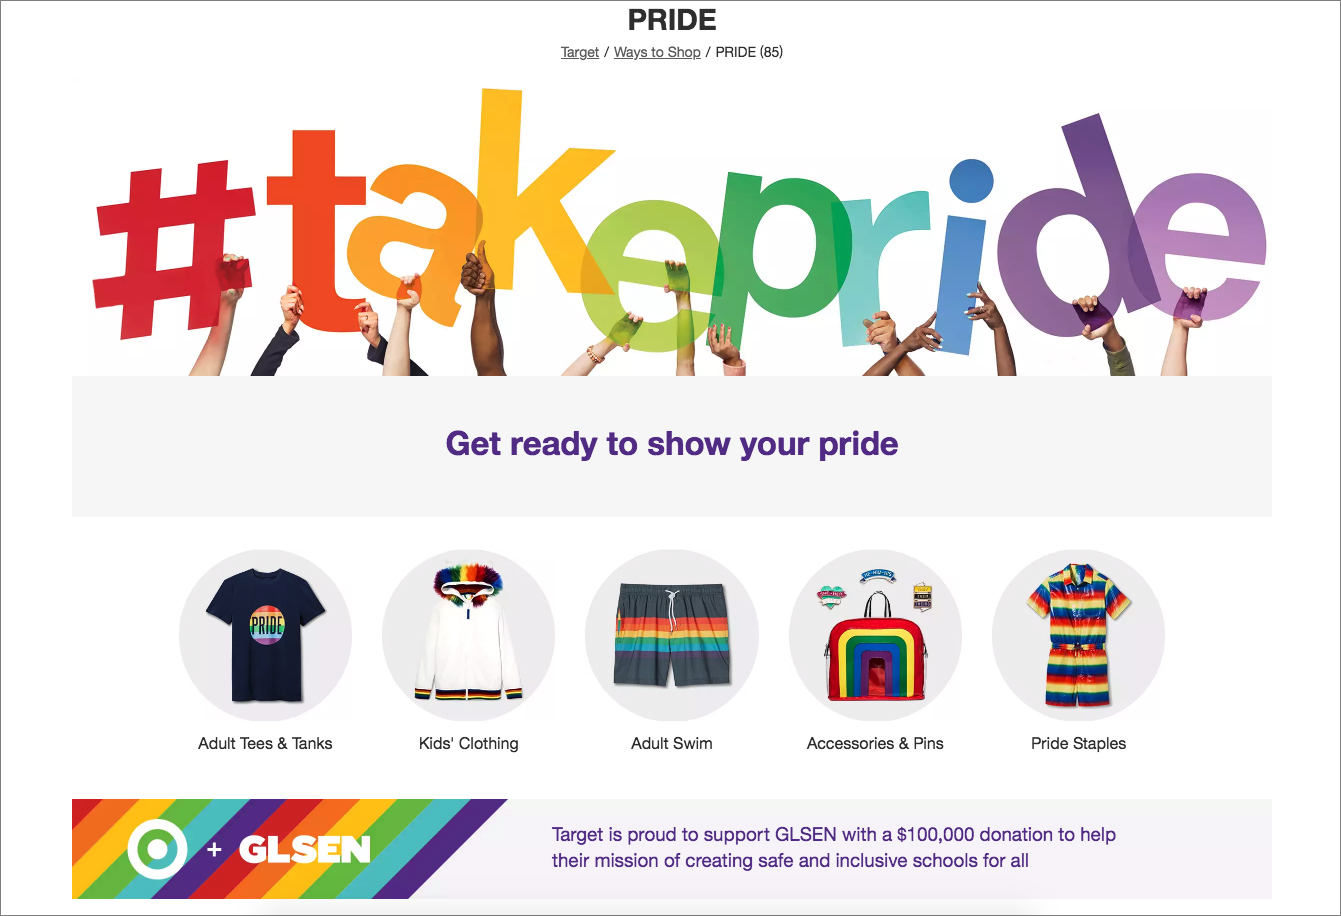 Target Sells LGBTQ Clothing For Children, Funds Group Whose Founder Praised NAMBLA Defender